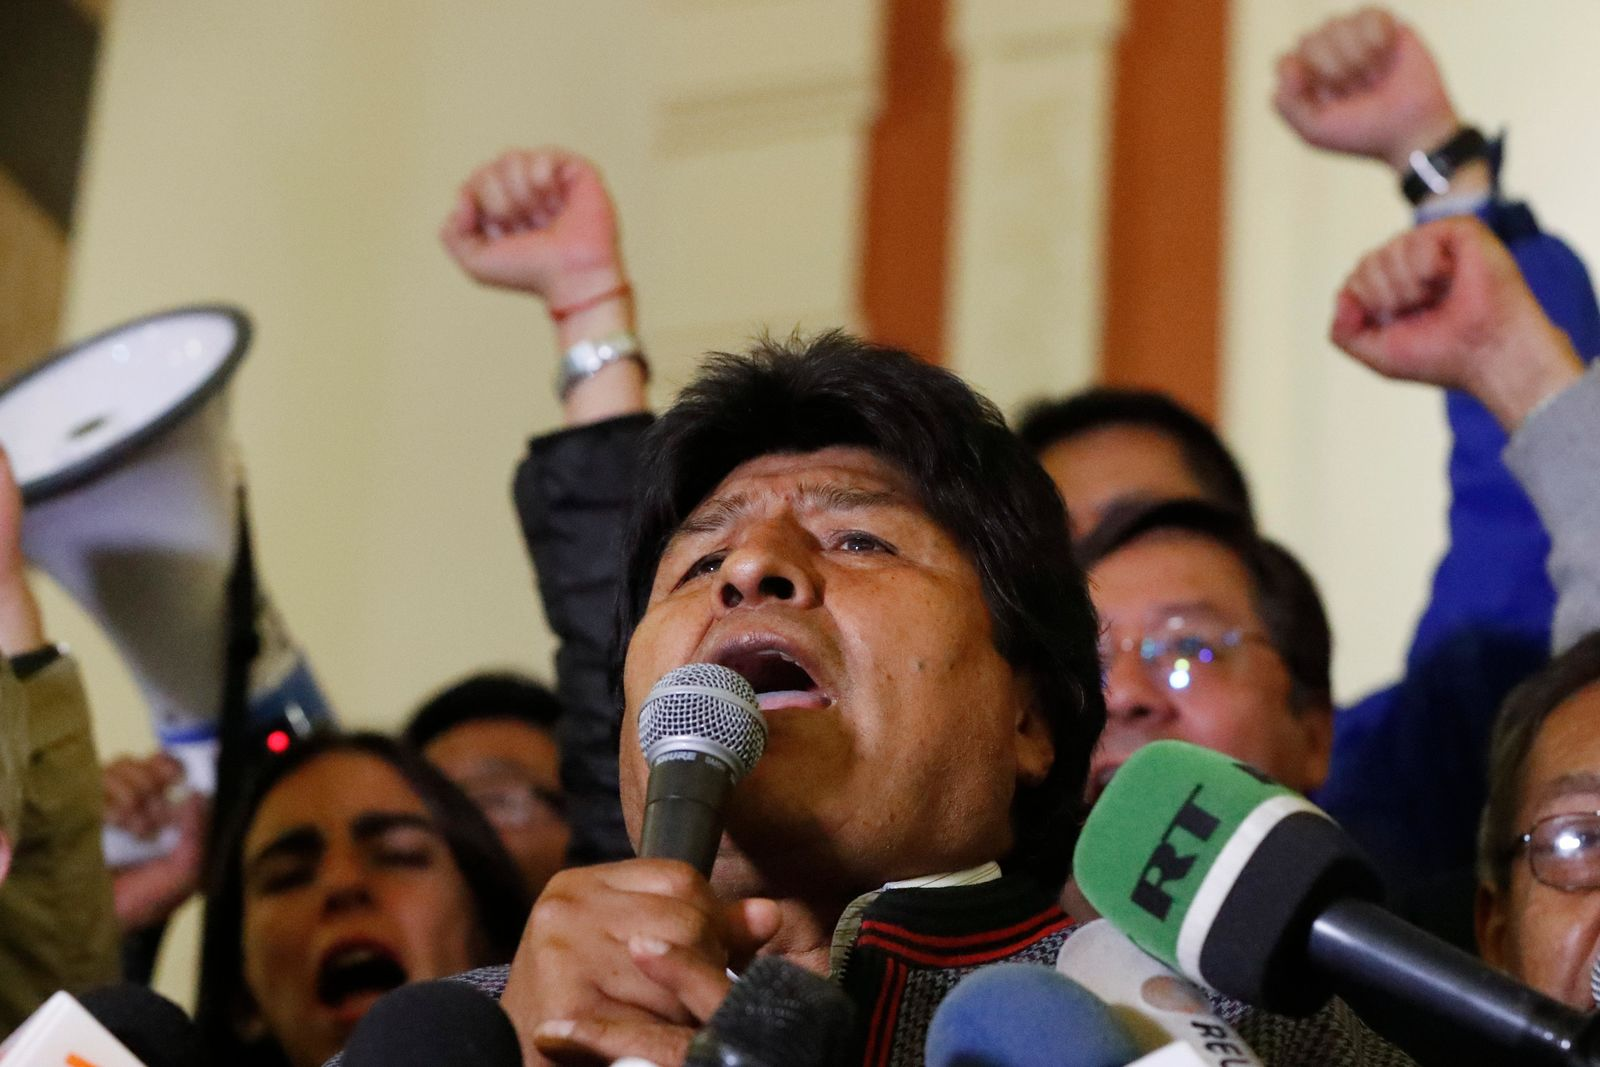 Bolivian President Evo Morales speaks to supporters at the presidential palace in La Paz, Bolivia, after a first round presidential election, Sunday, Oct. 20, 2019. . (AP Photo/Jorge Saenz)